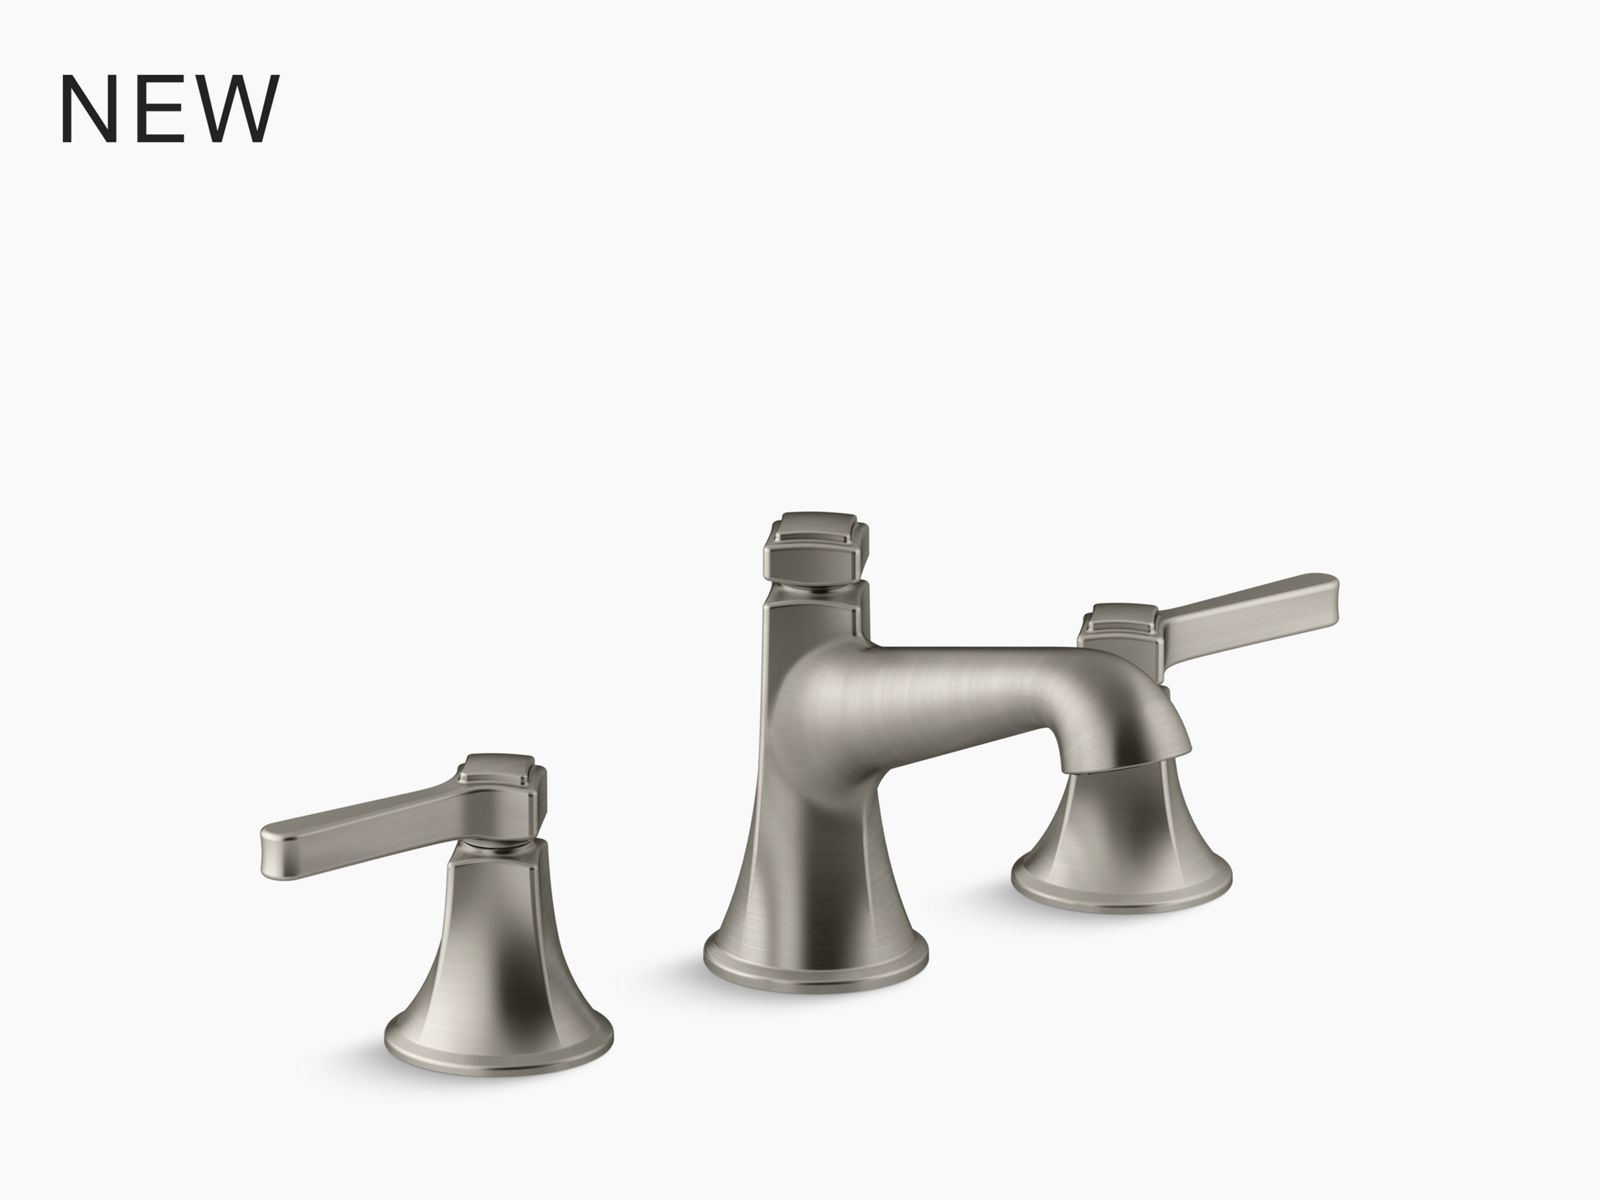 iron impressions 37 vanity top bathroom sink with 8 widespread faucet holes